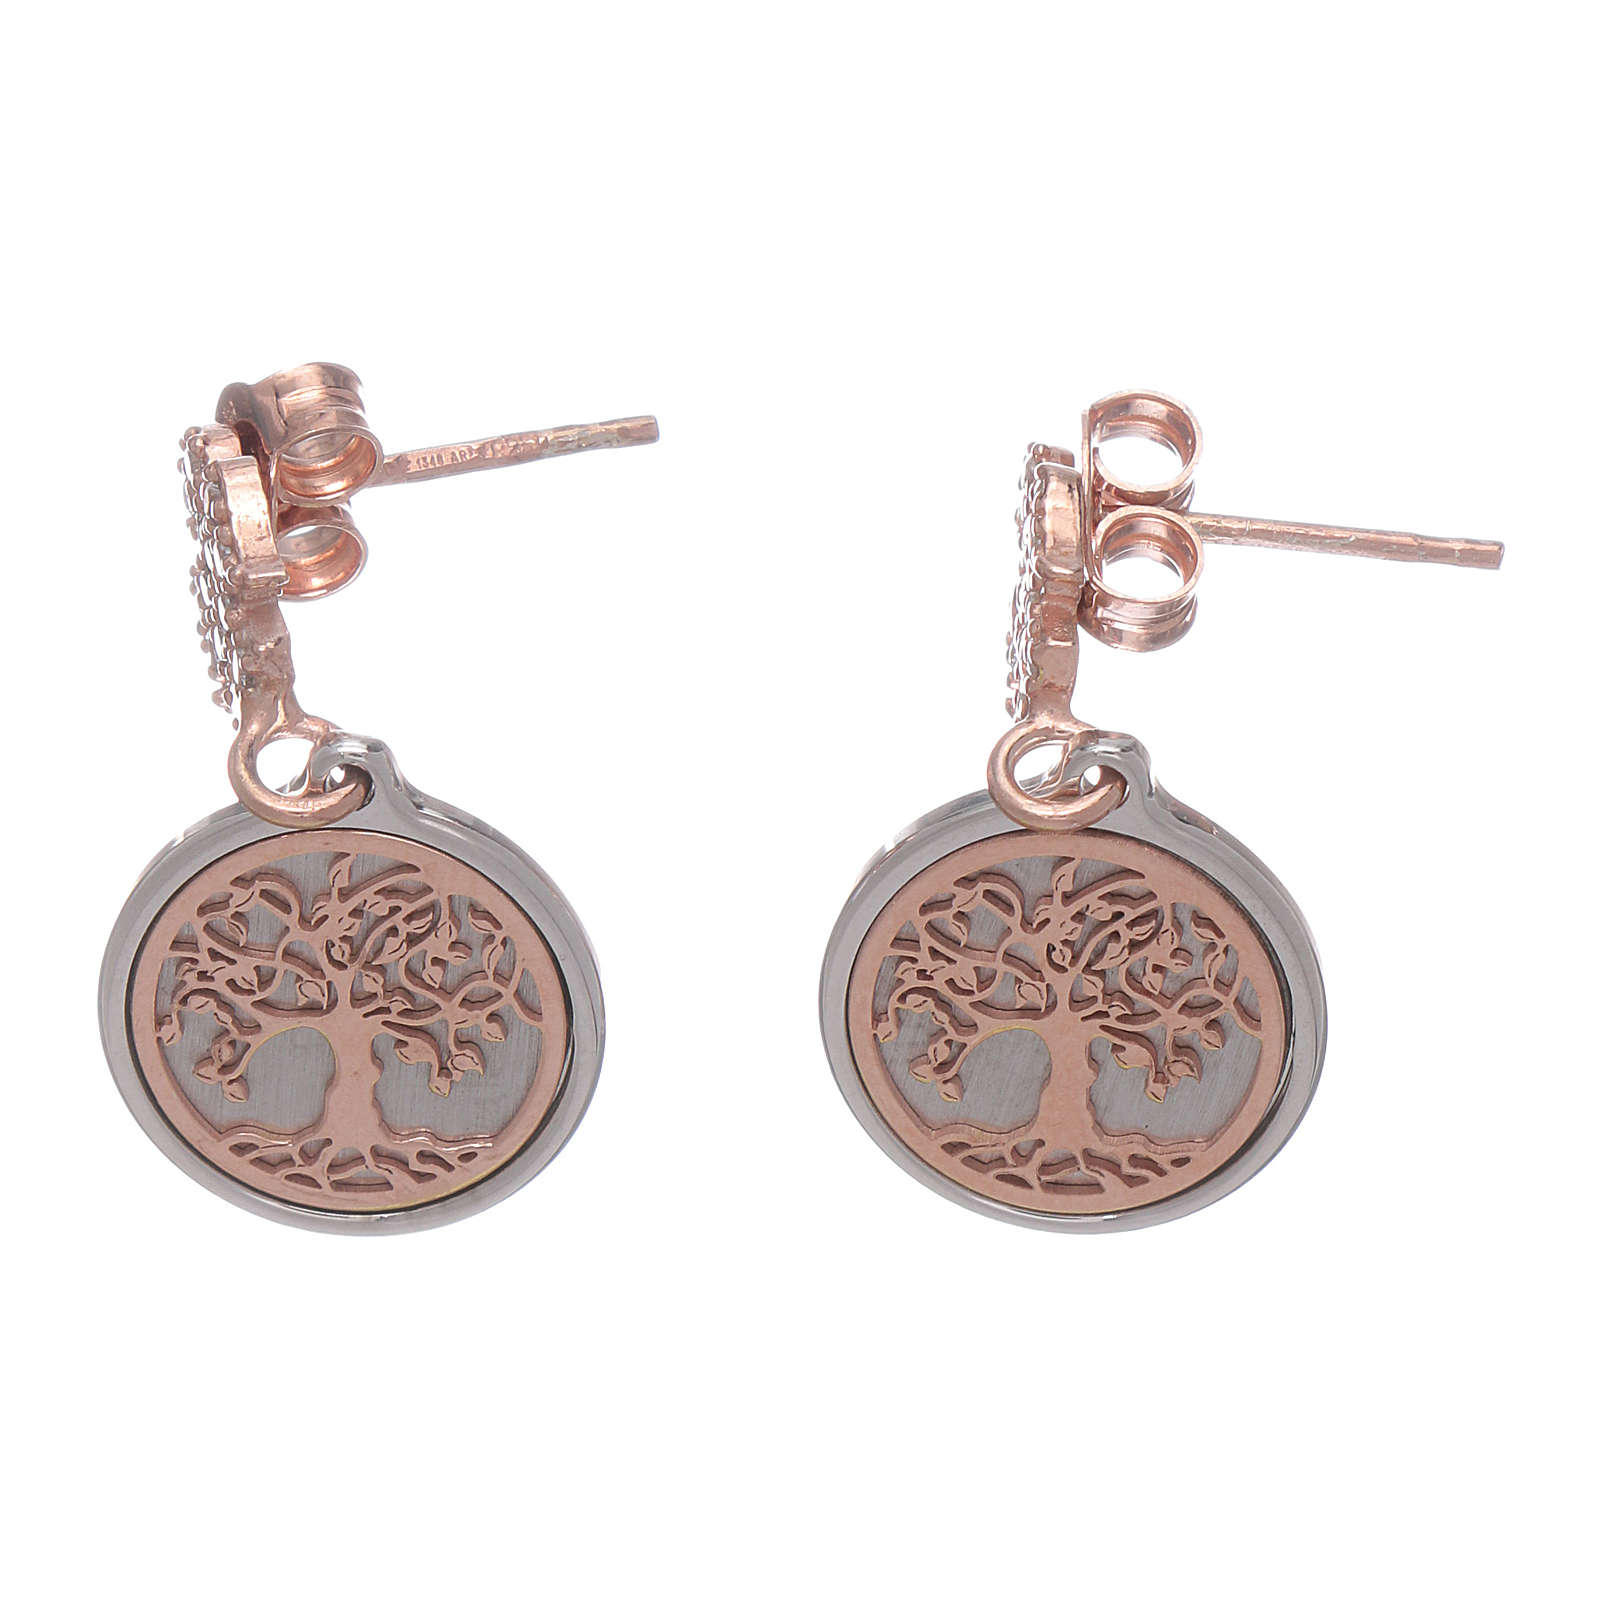 AMEN earrings in 925 sterling silver with angel and Tree of Life 4